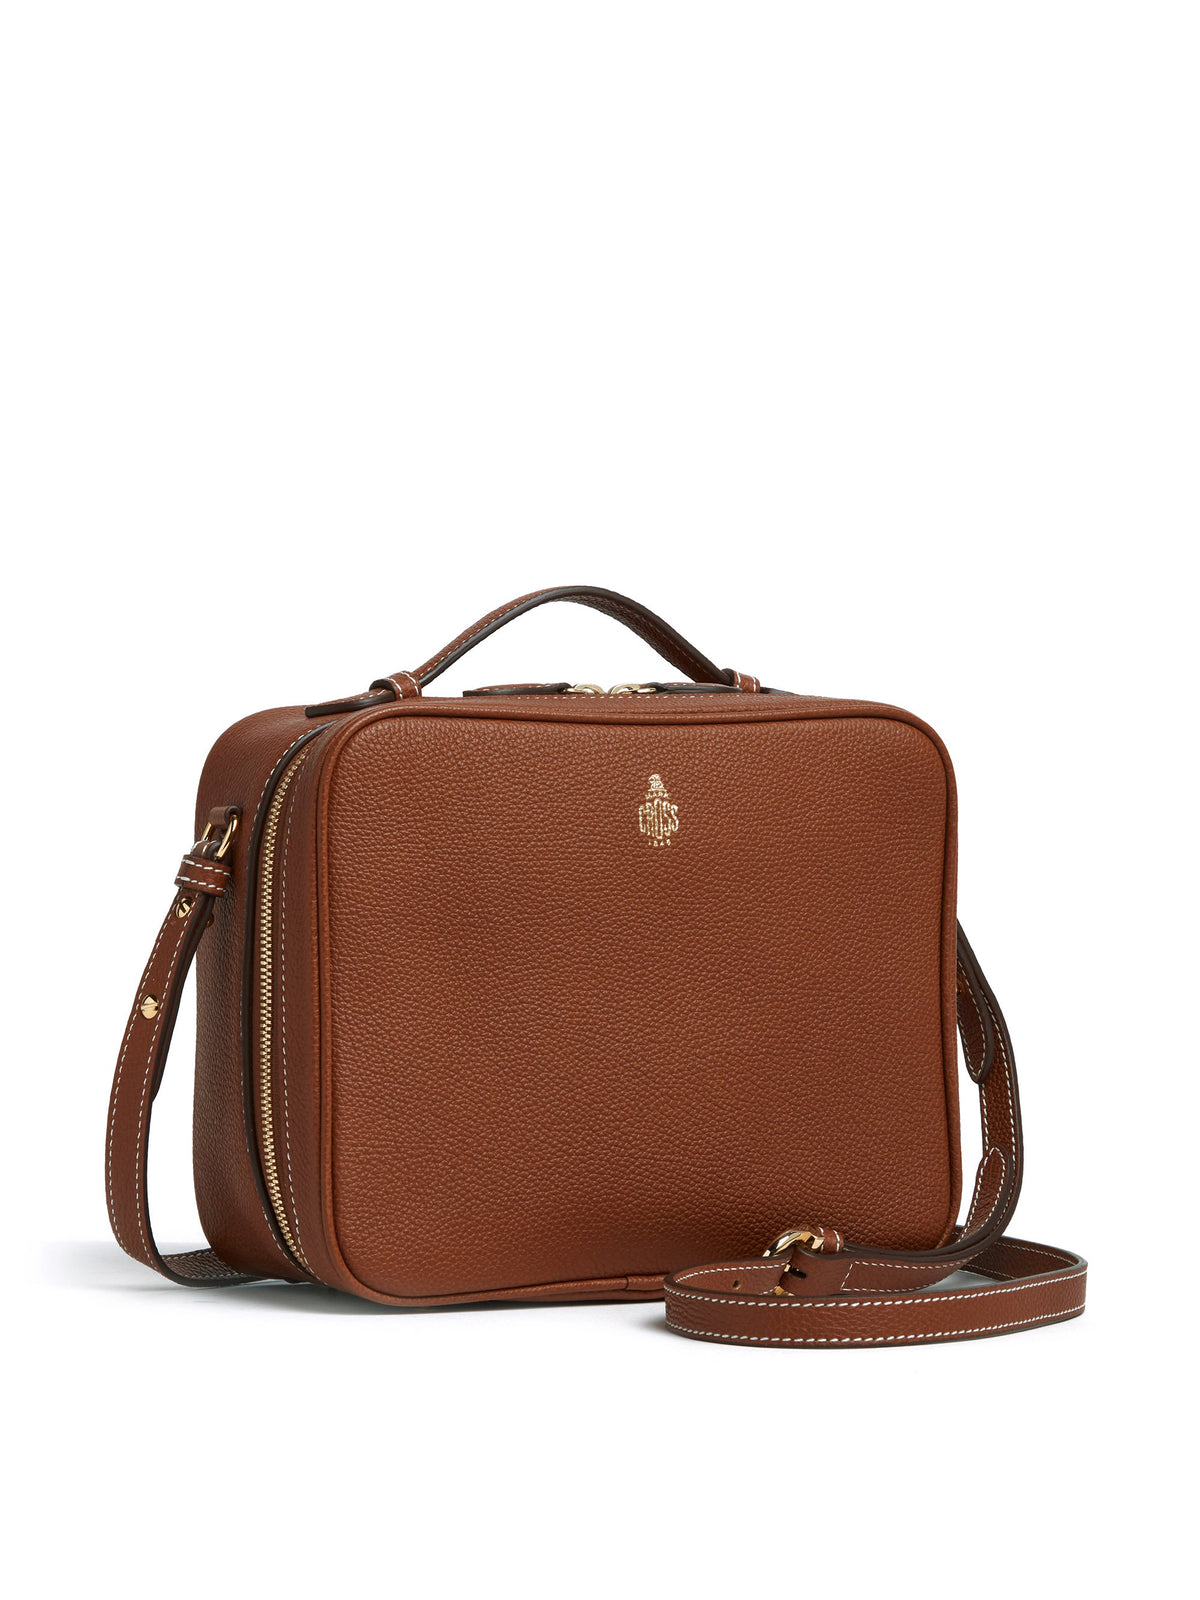 Madison Leather Crossbody Bag